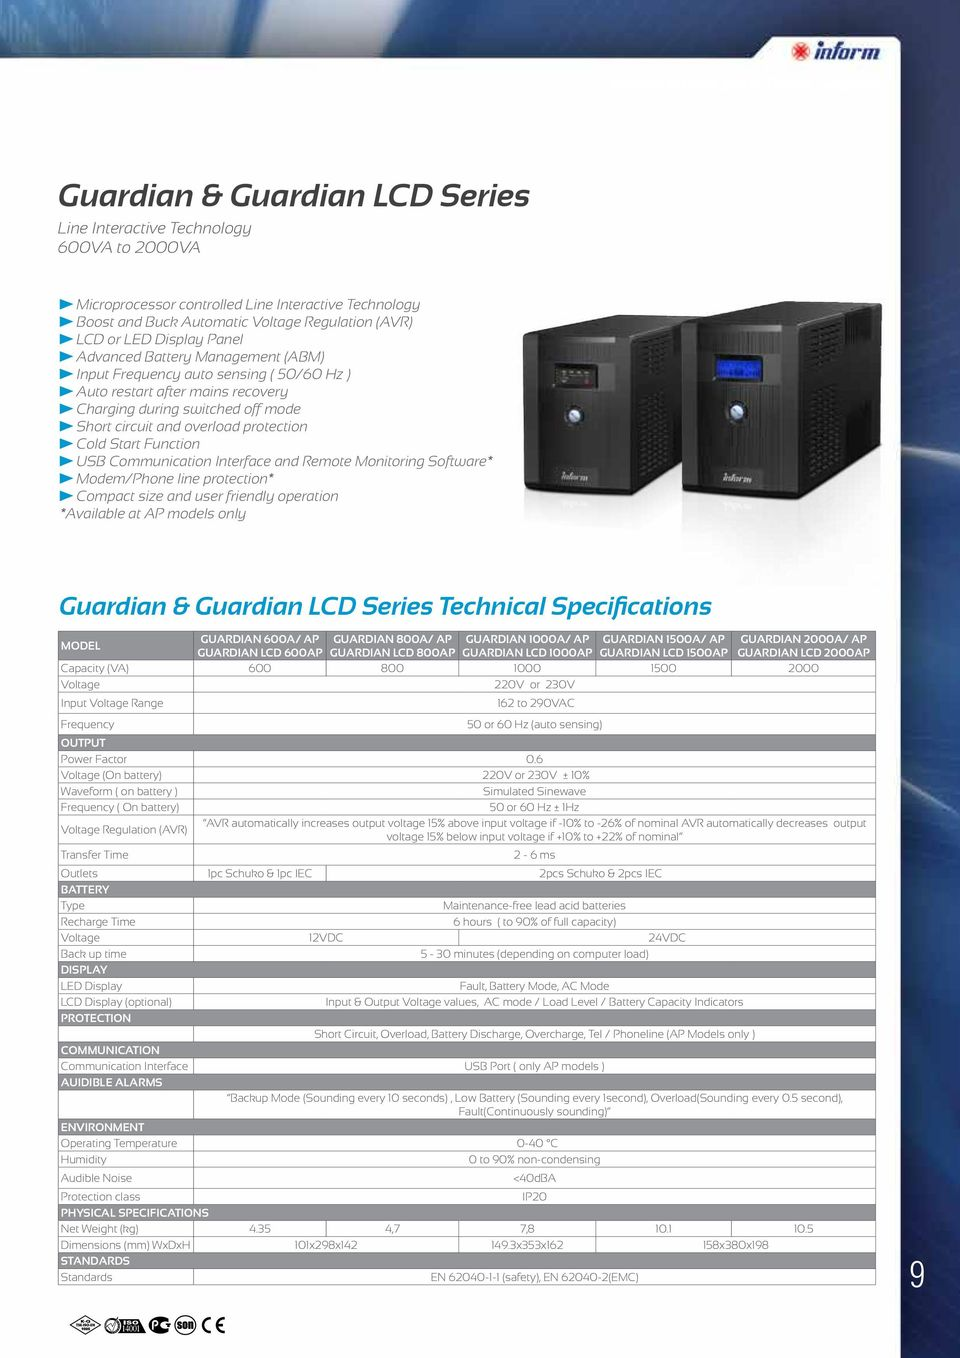 overload protection Cold Start Function USB Communication Interface and Remote Monitoring Software* Modem/Phone line protection* Compact size and user friendly operation *Available at AP models only